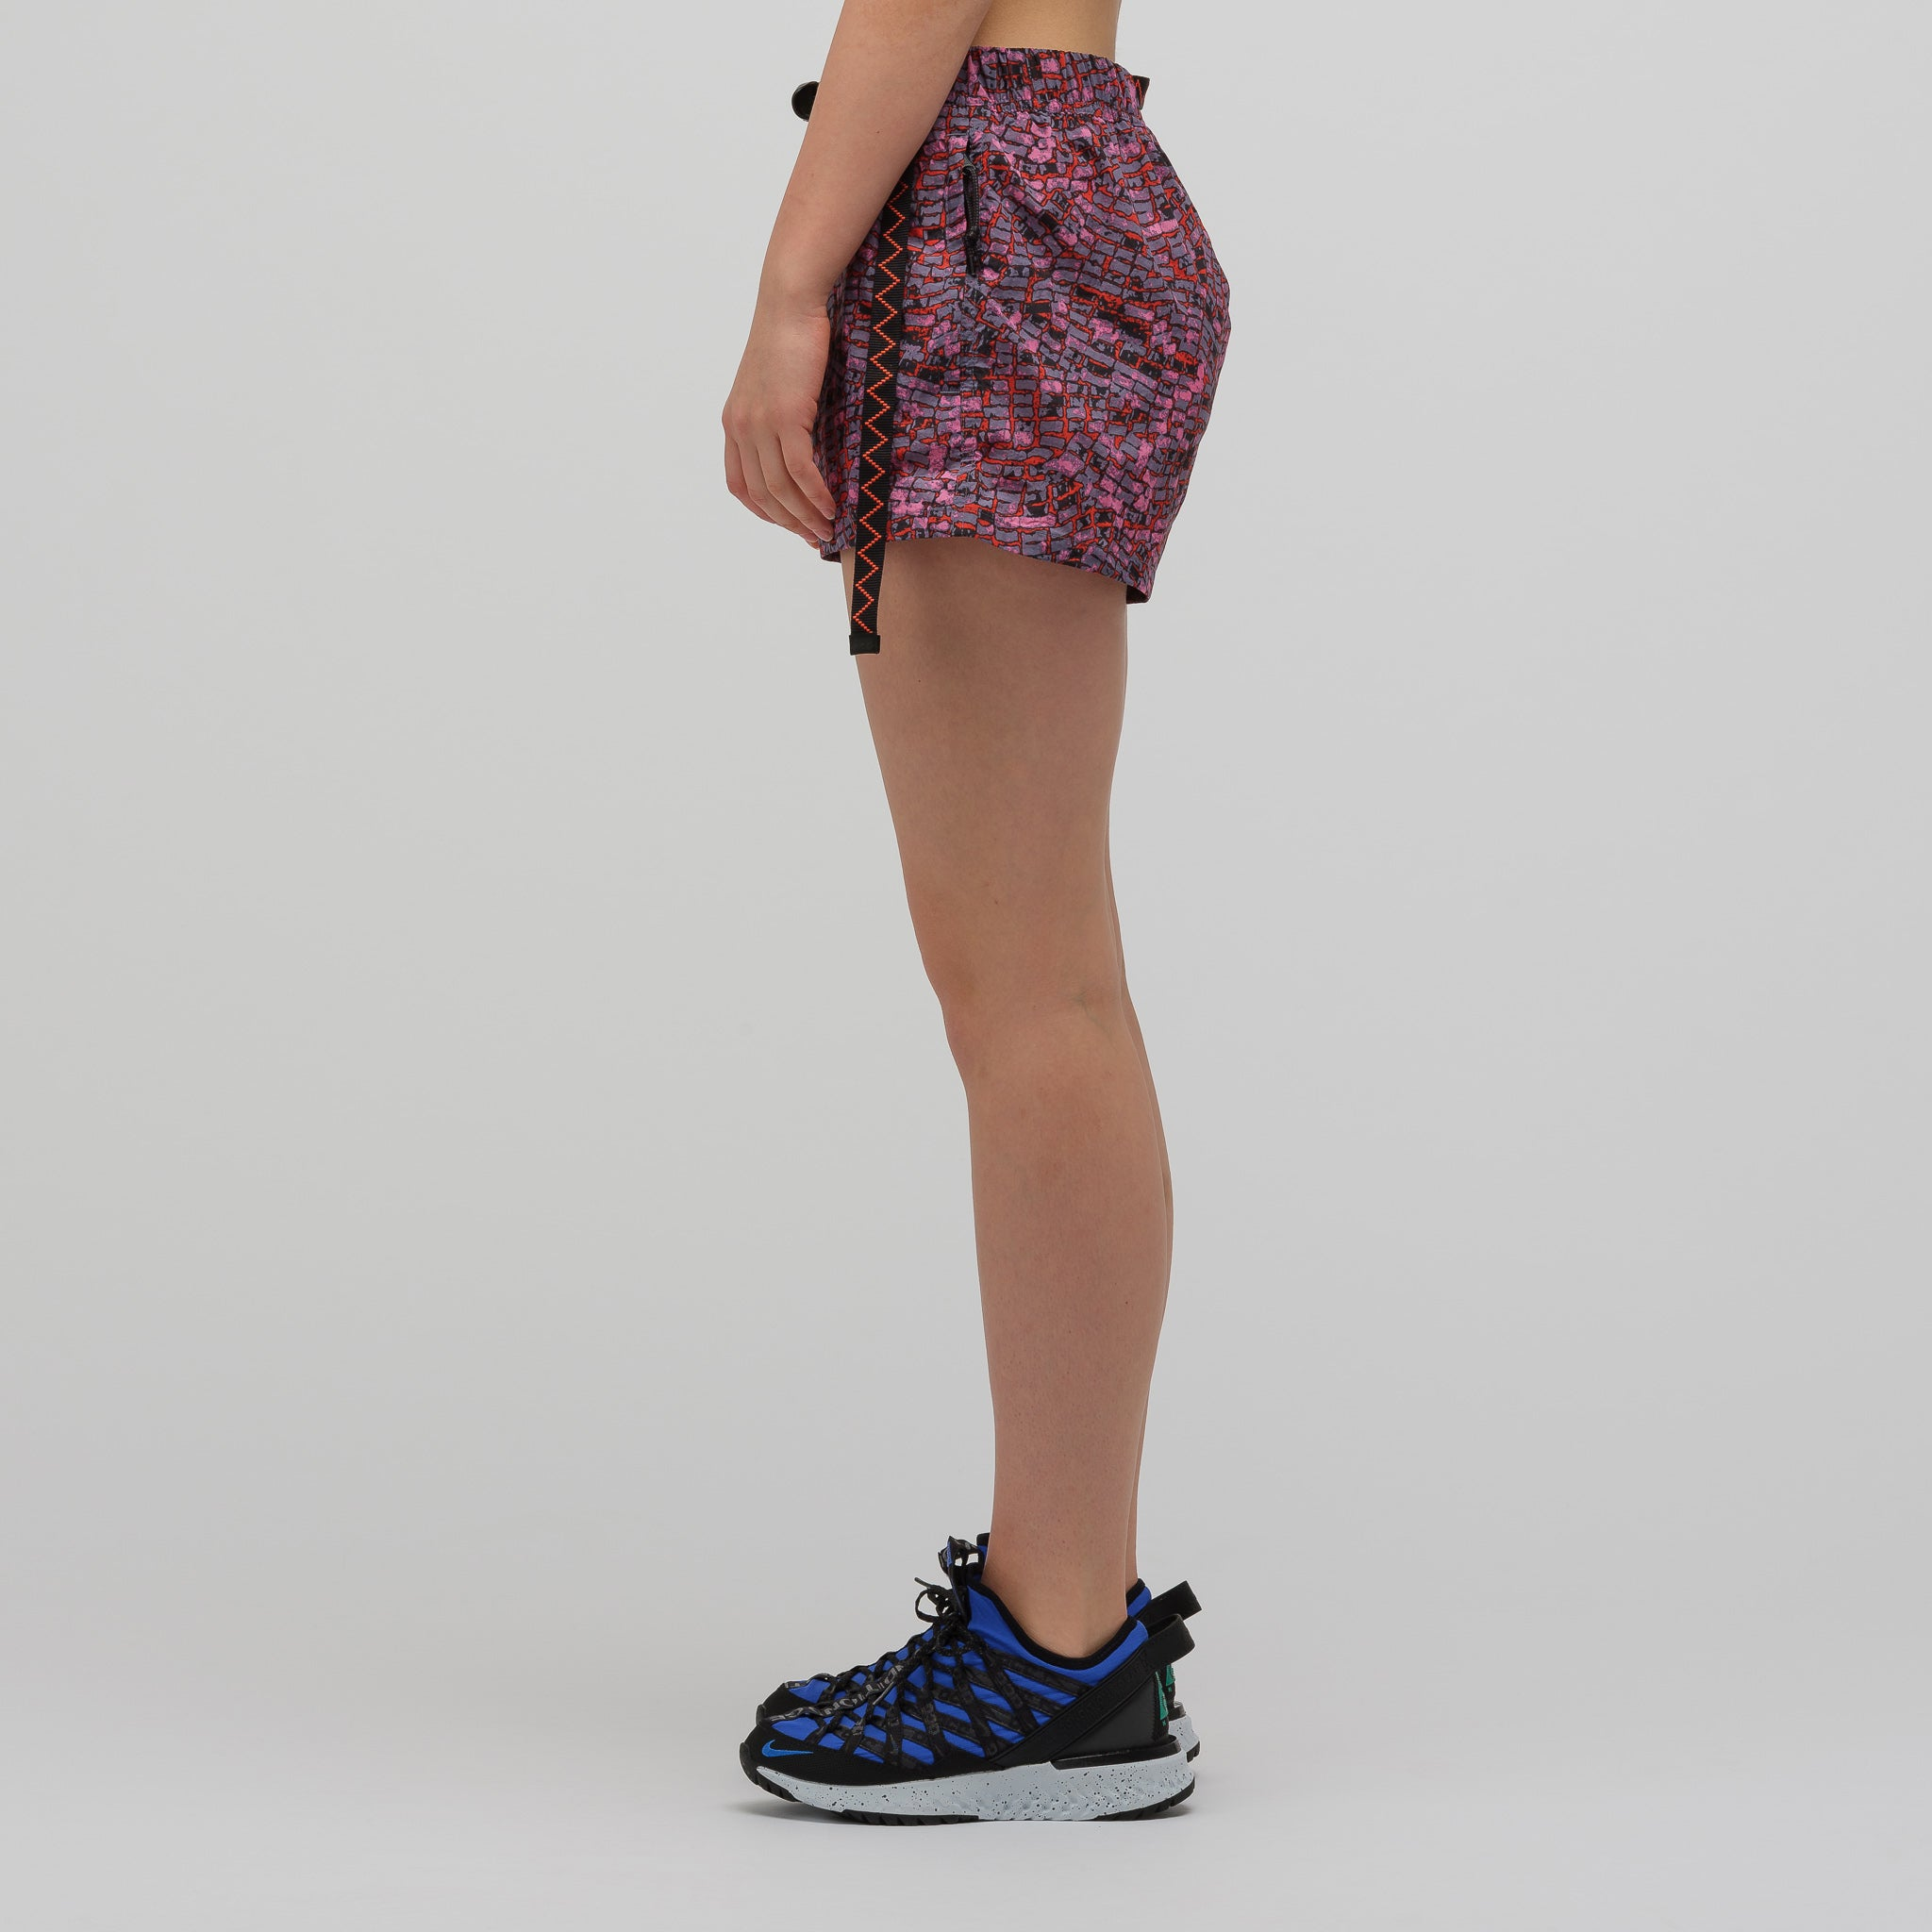 ACG Short in Multi/Black